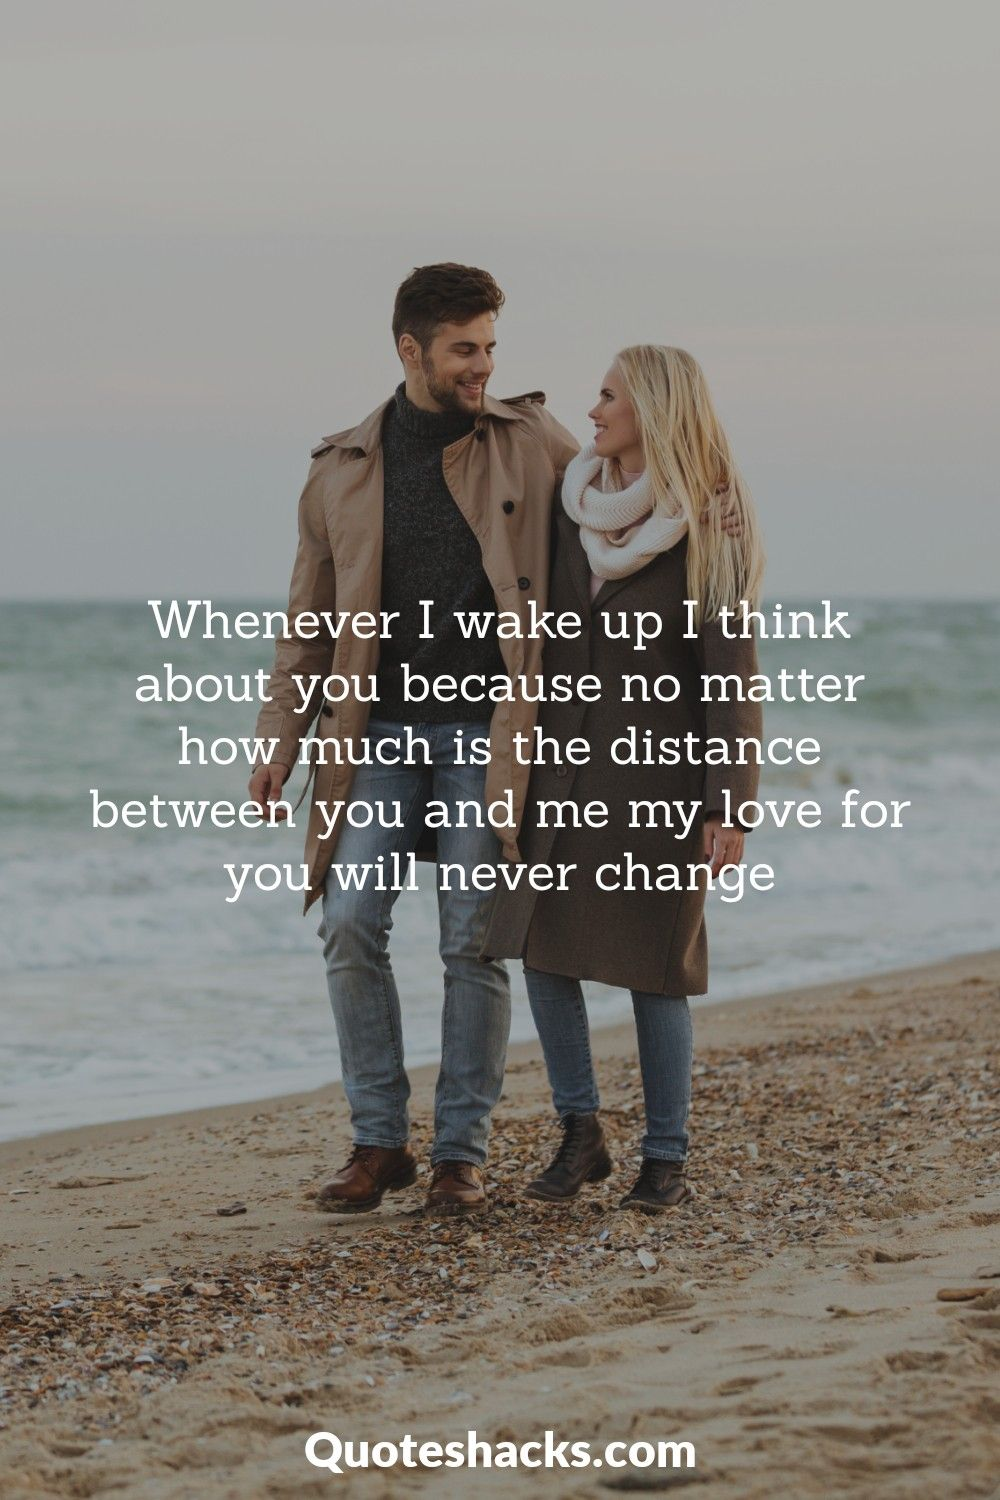 Love Quotes For Long Distance Relationship For Her